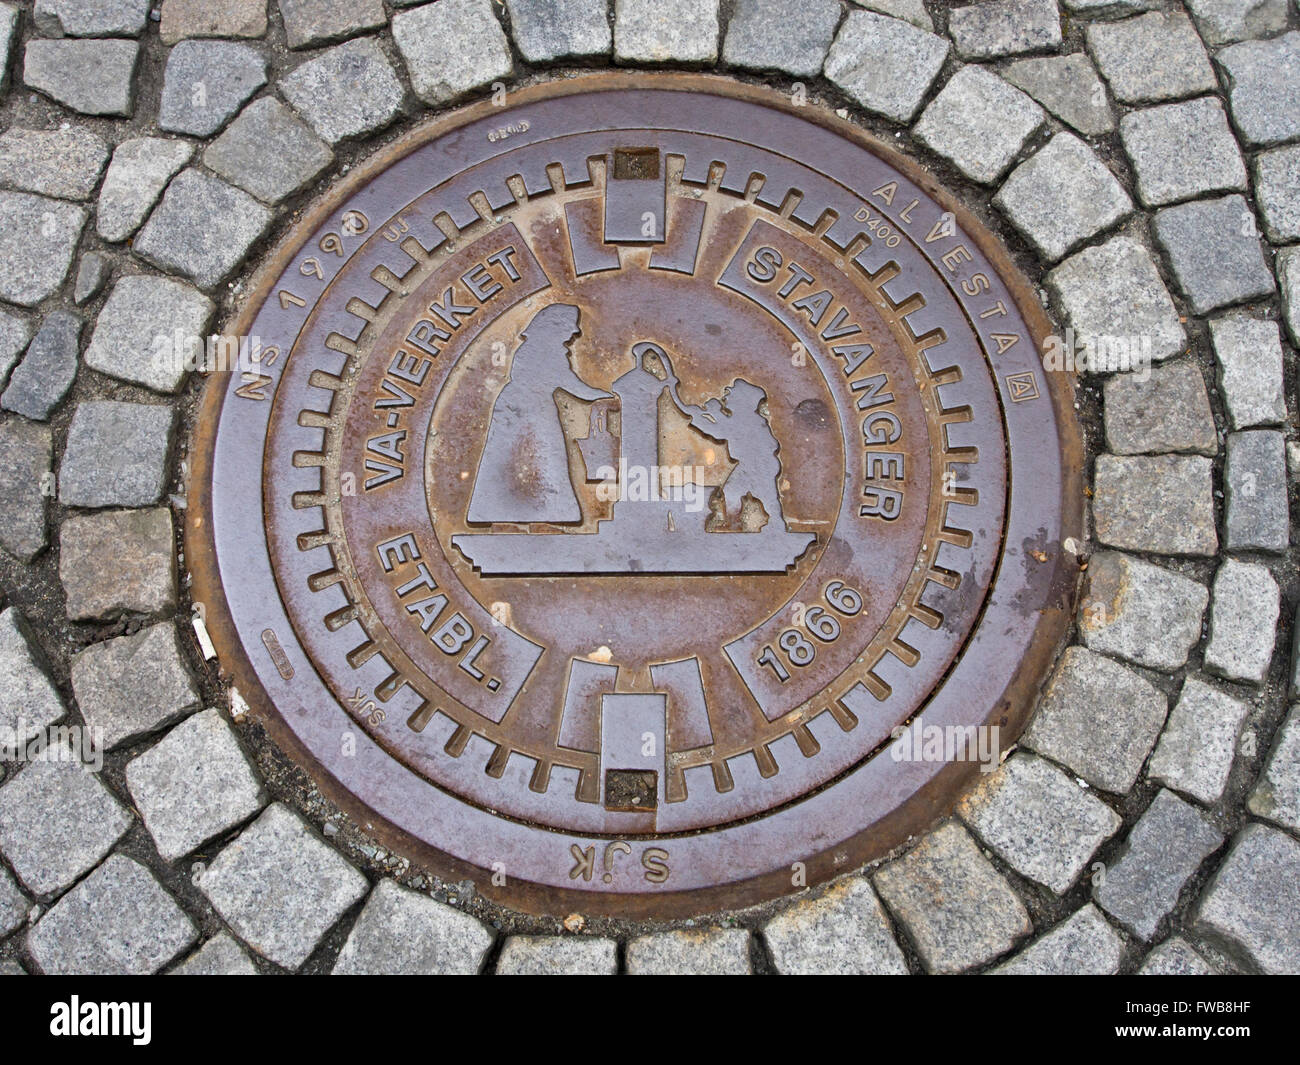 norway manhole cover stockfotos norway manhole cover. Black Bedroom Furniture Sets. Home Design Ideas